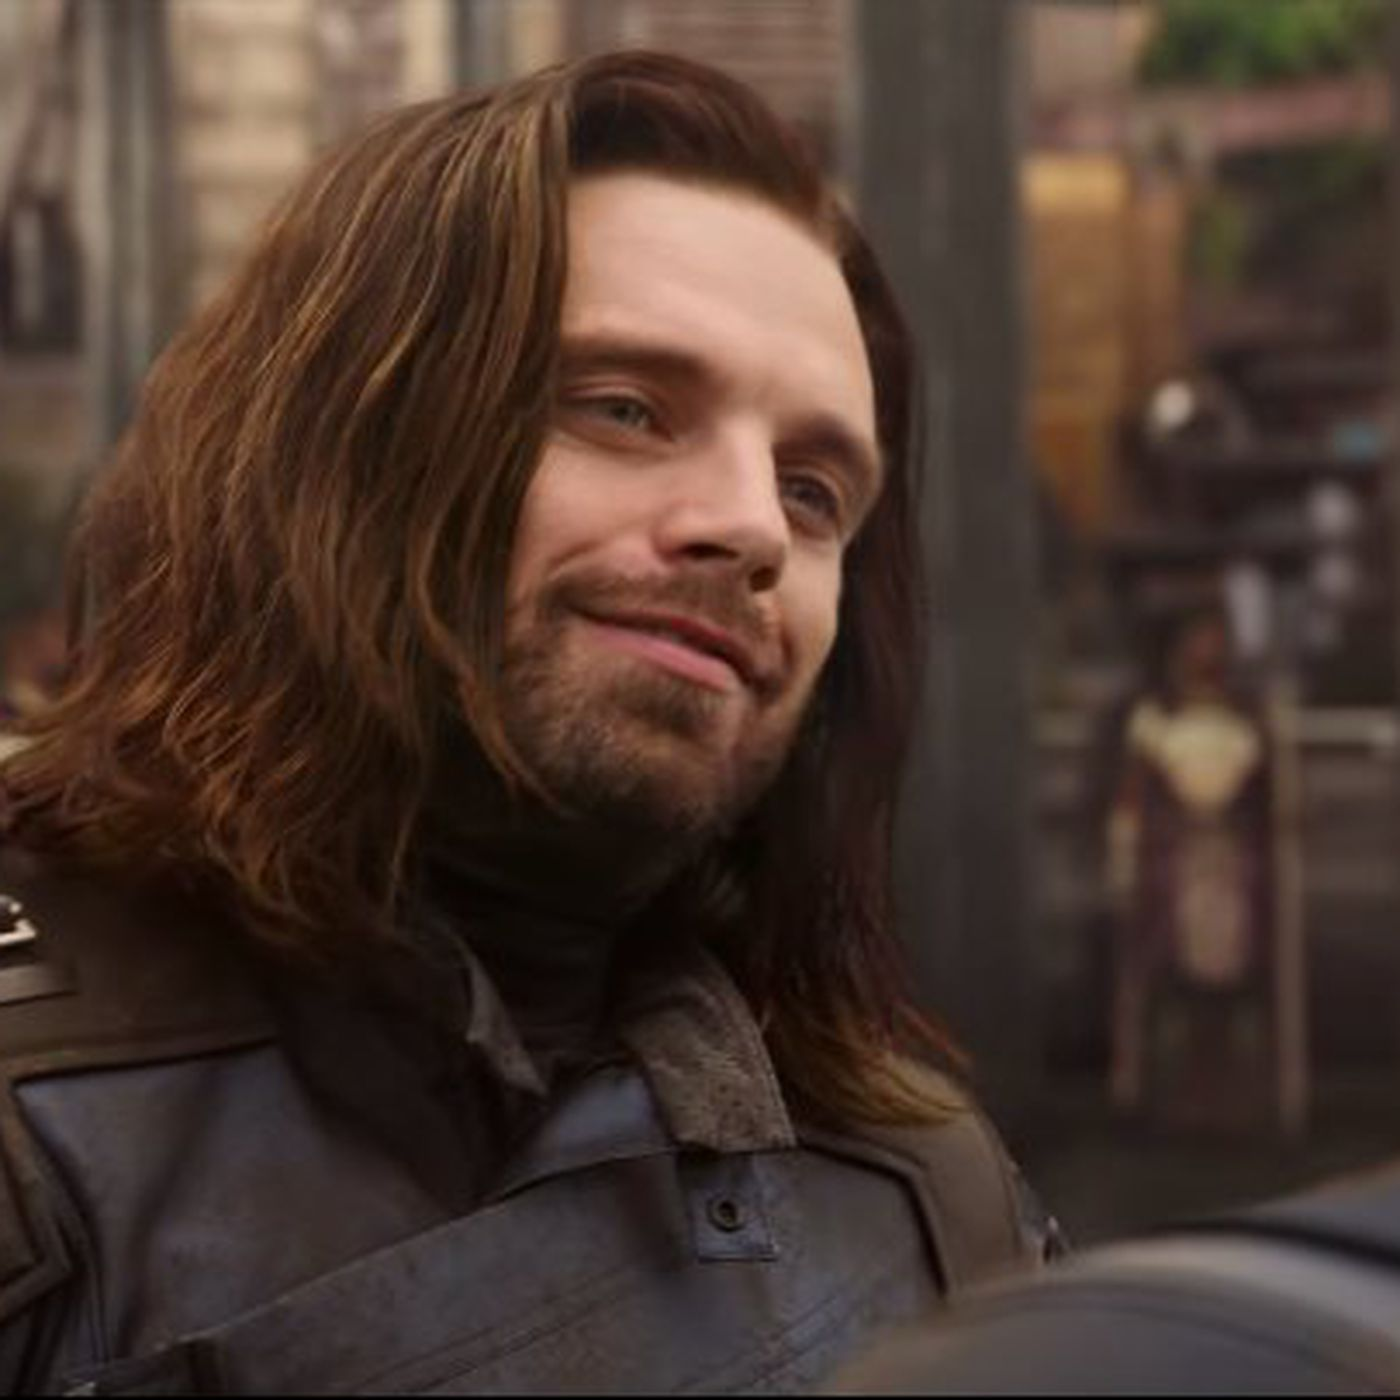 Stucky, Tumblr's favorite Avengers pairing, only grows stronger